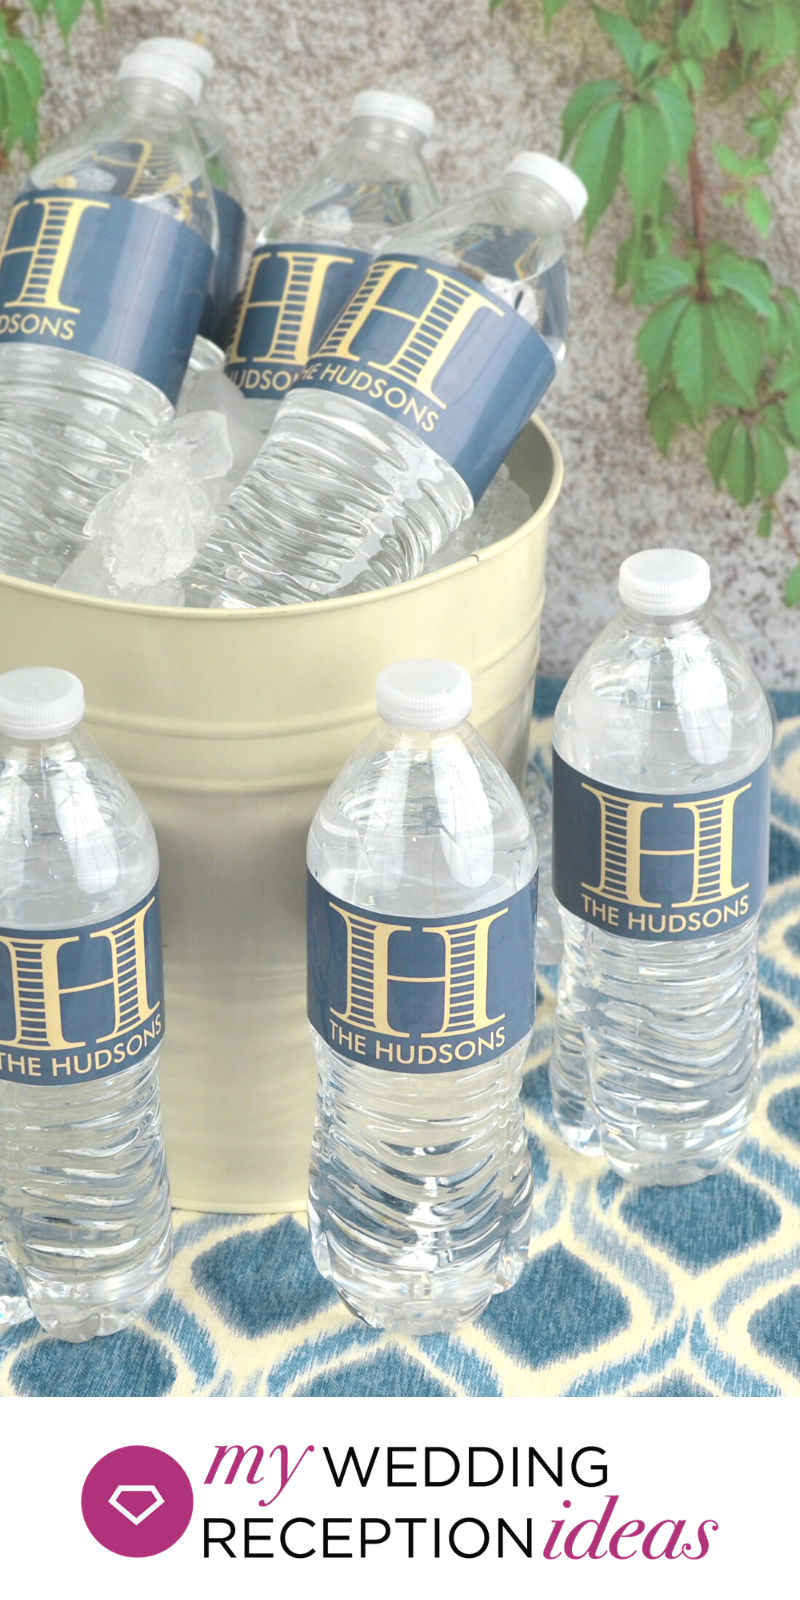 Personalized Wedding Monogram Water Bottle Labels In 2020 Water